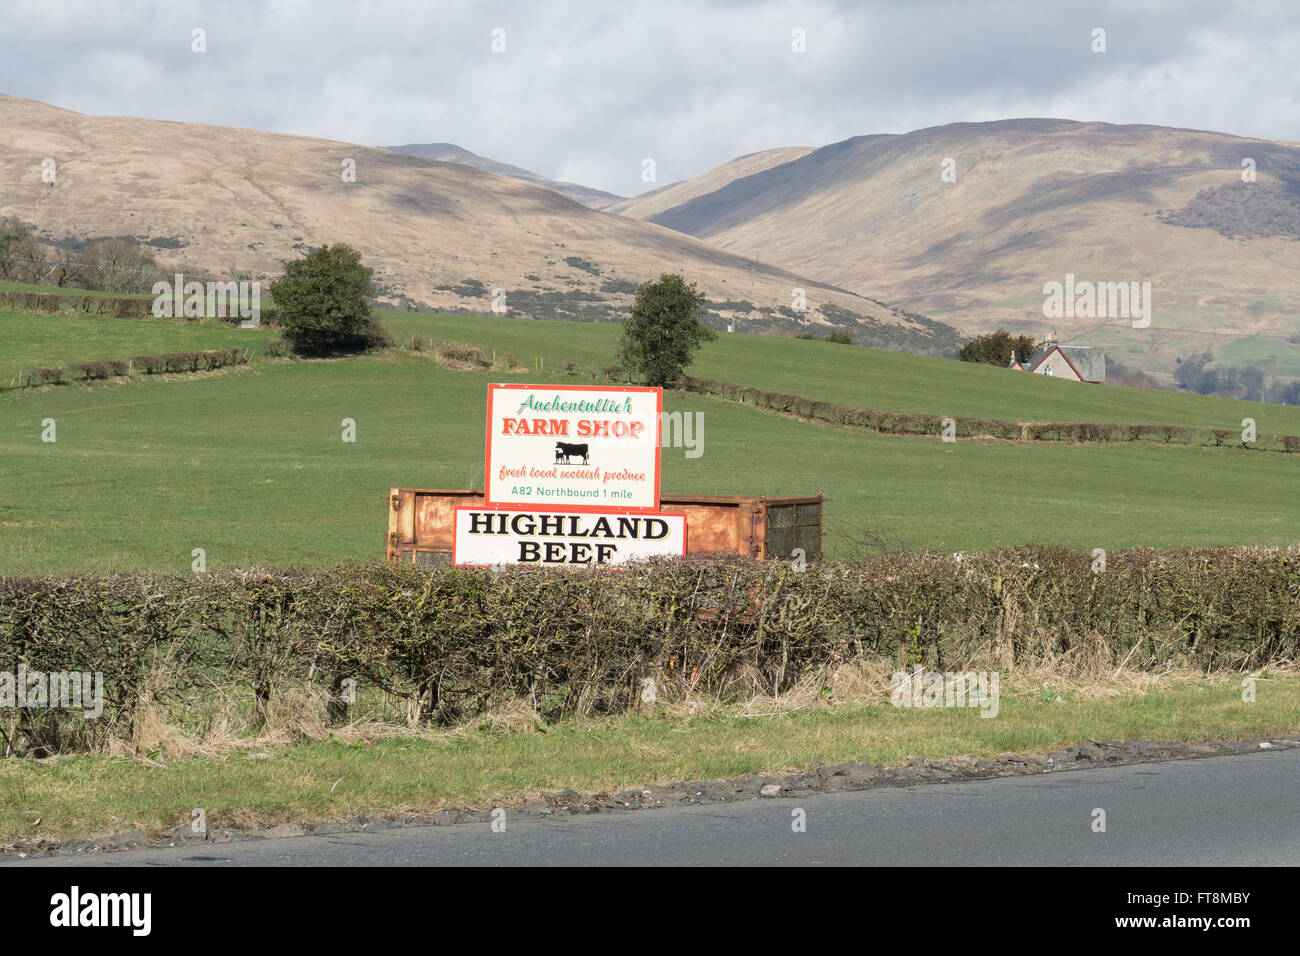 Auchentullich Farm Shop and Highland Beef sign in Loch Lomond and the Trossachs National Park, Scotland just off - Stock Image